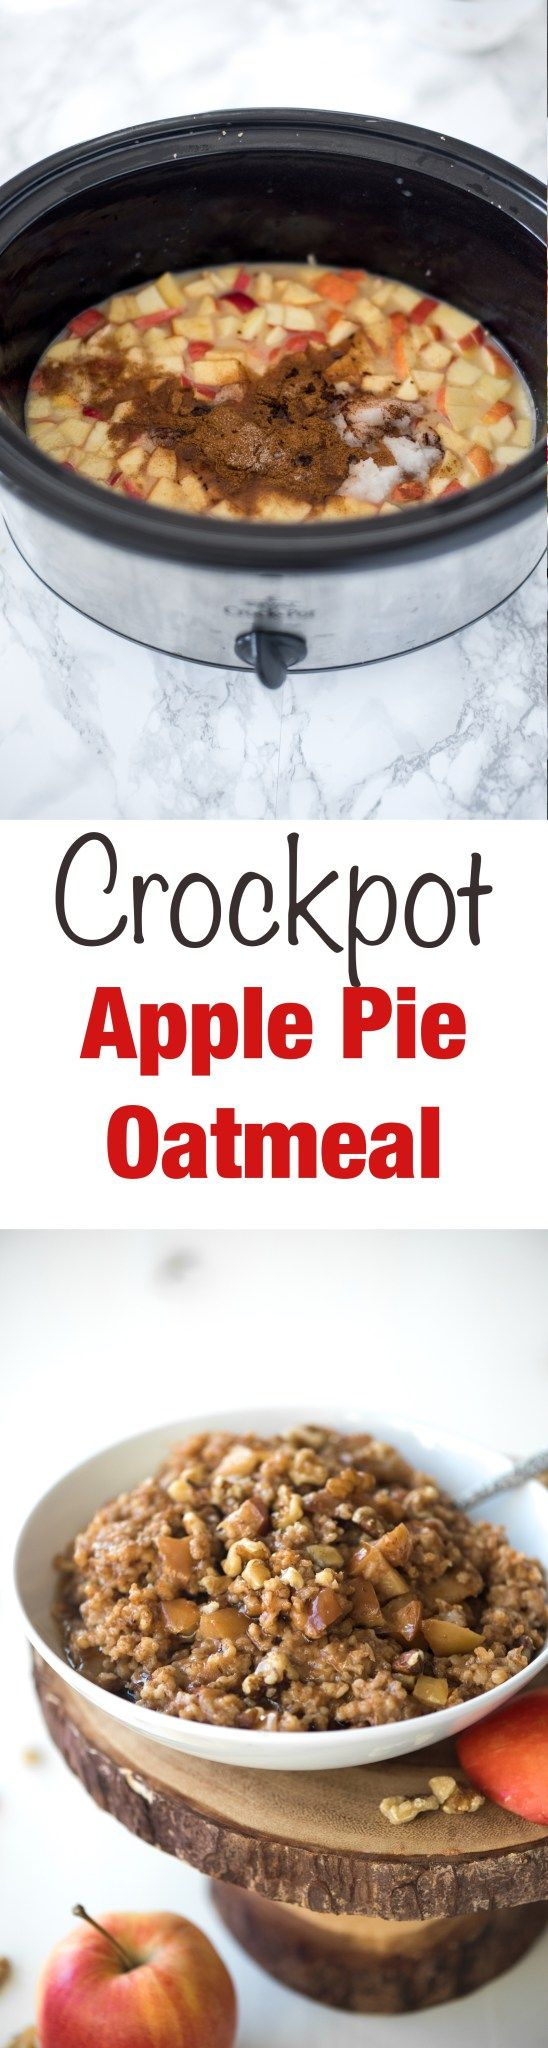 Crockpot Apple Pie Oatmeal- let the crockpot do the work for you! Have a healthy breakfast all week long.